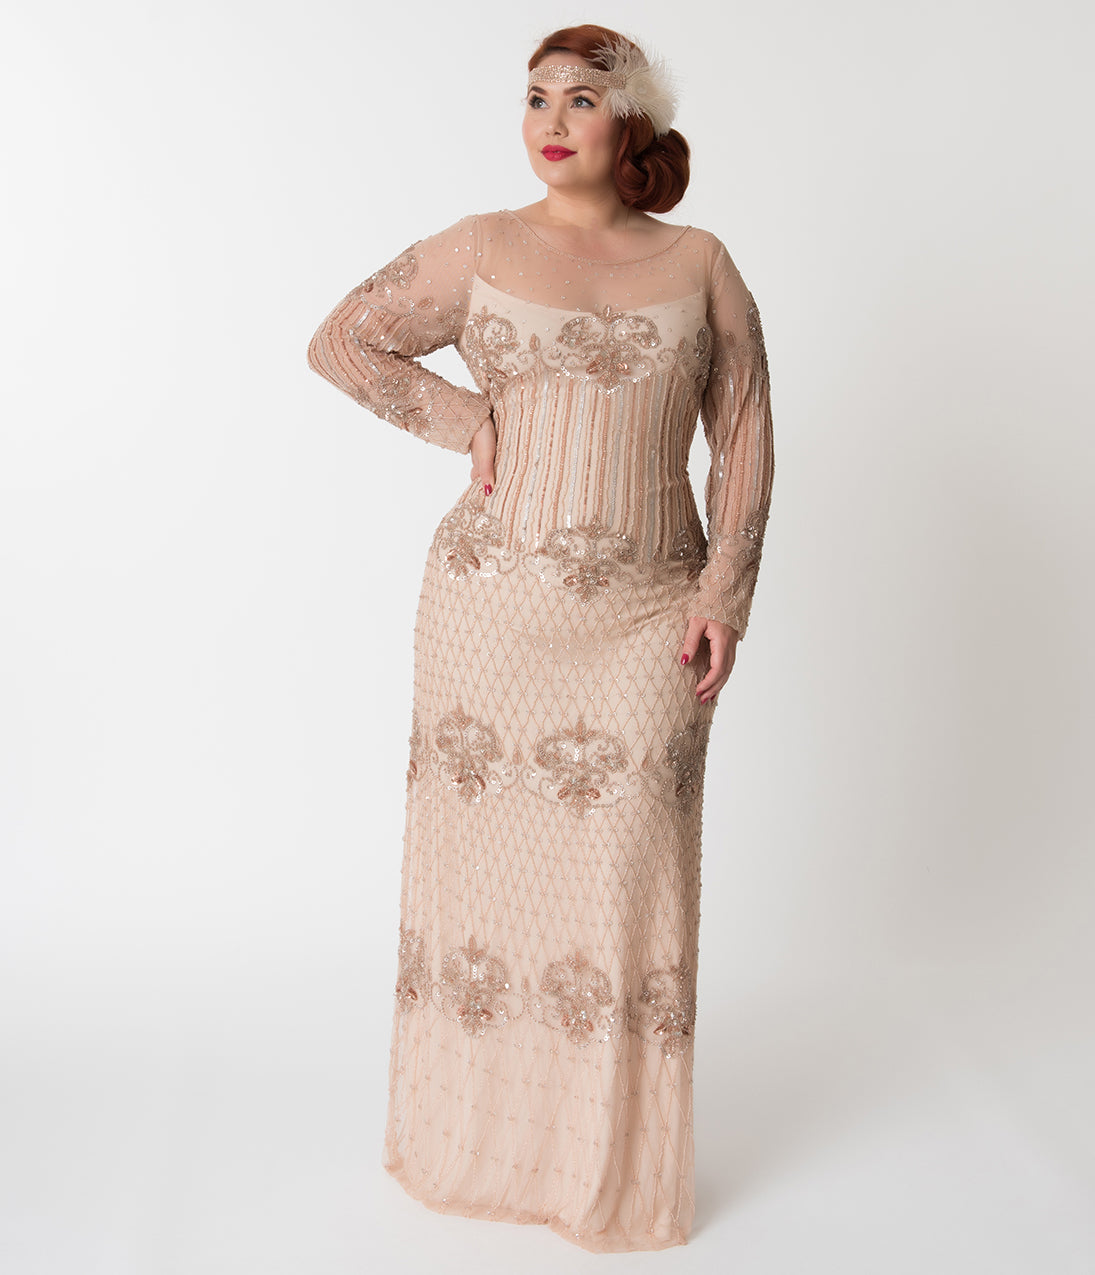 1930s Art Deco Plus Size Dresses | Tea Dresses, Party Dresses Plus Size Blush Pink Embellished Mesh Long Sleeve Dolores Flapper Dress $218.00 AT vintagedancer.com